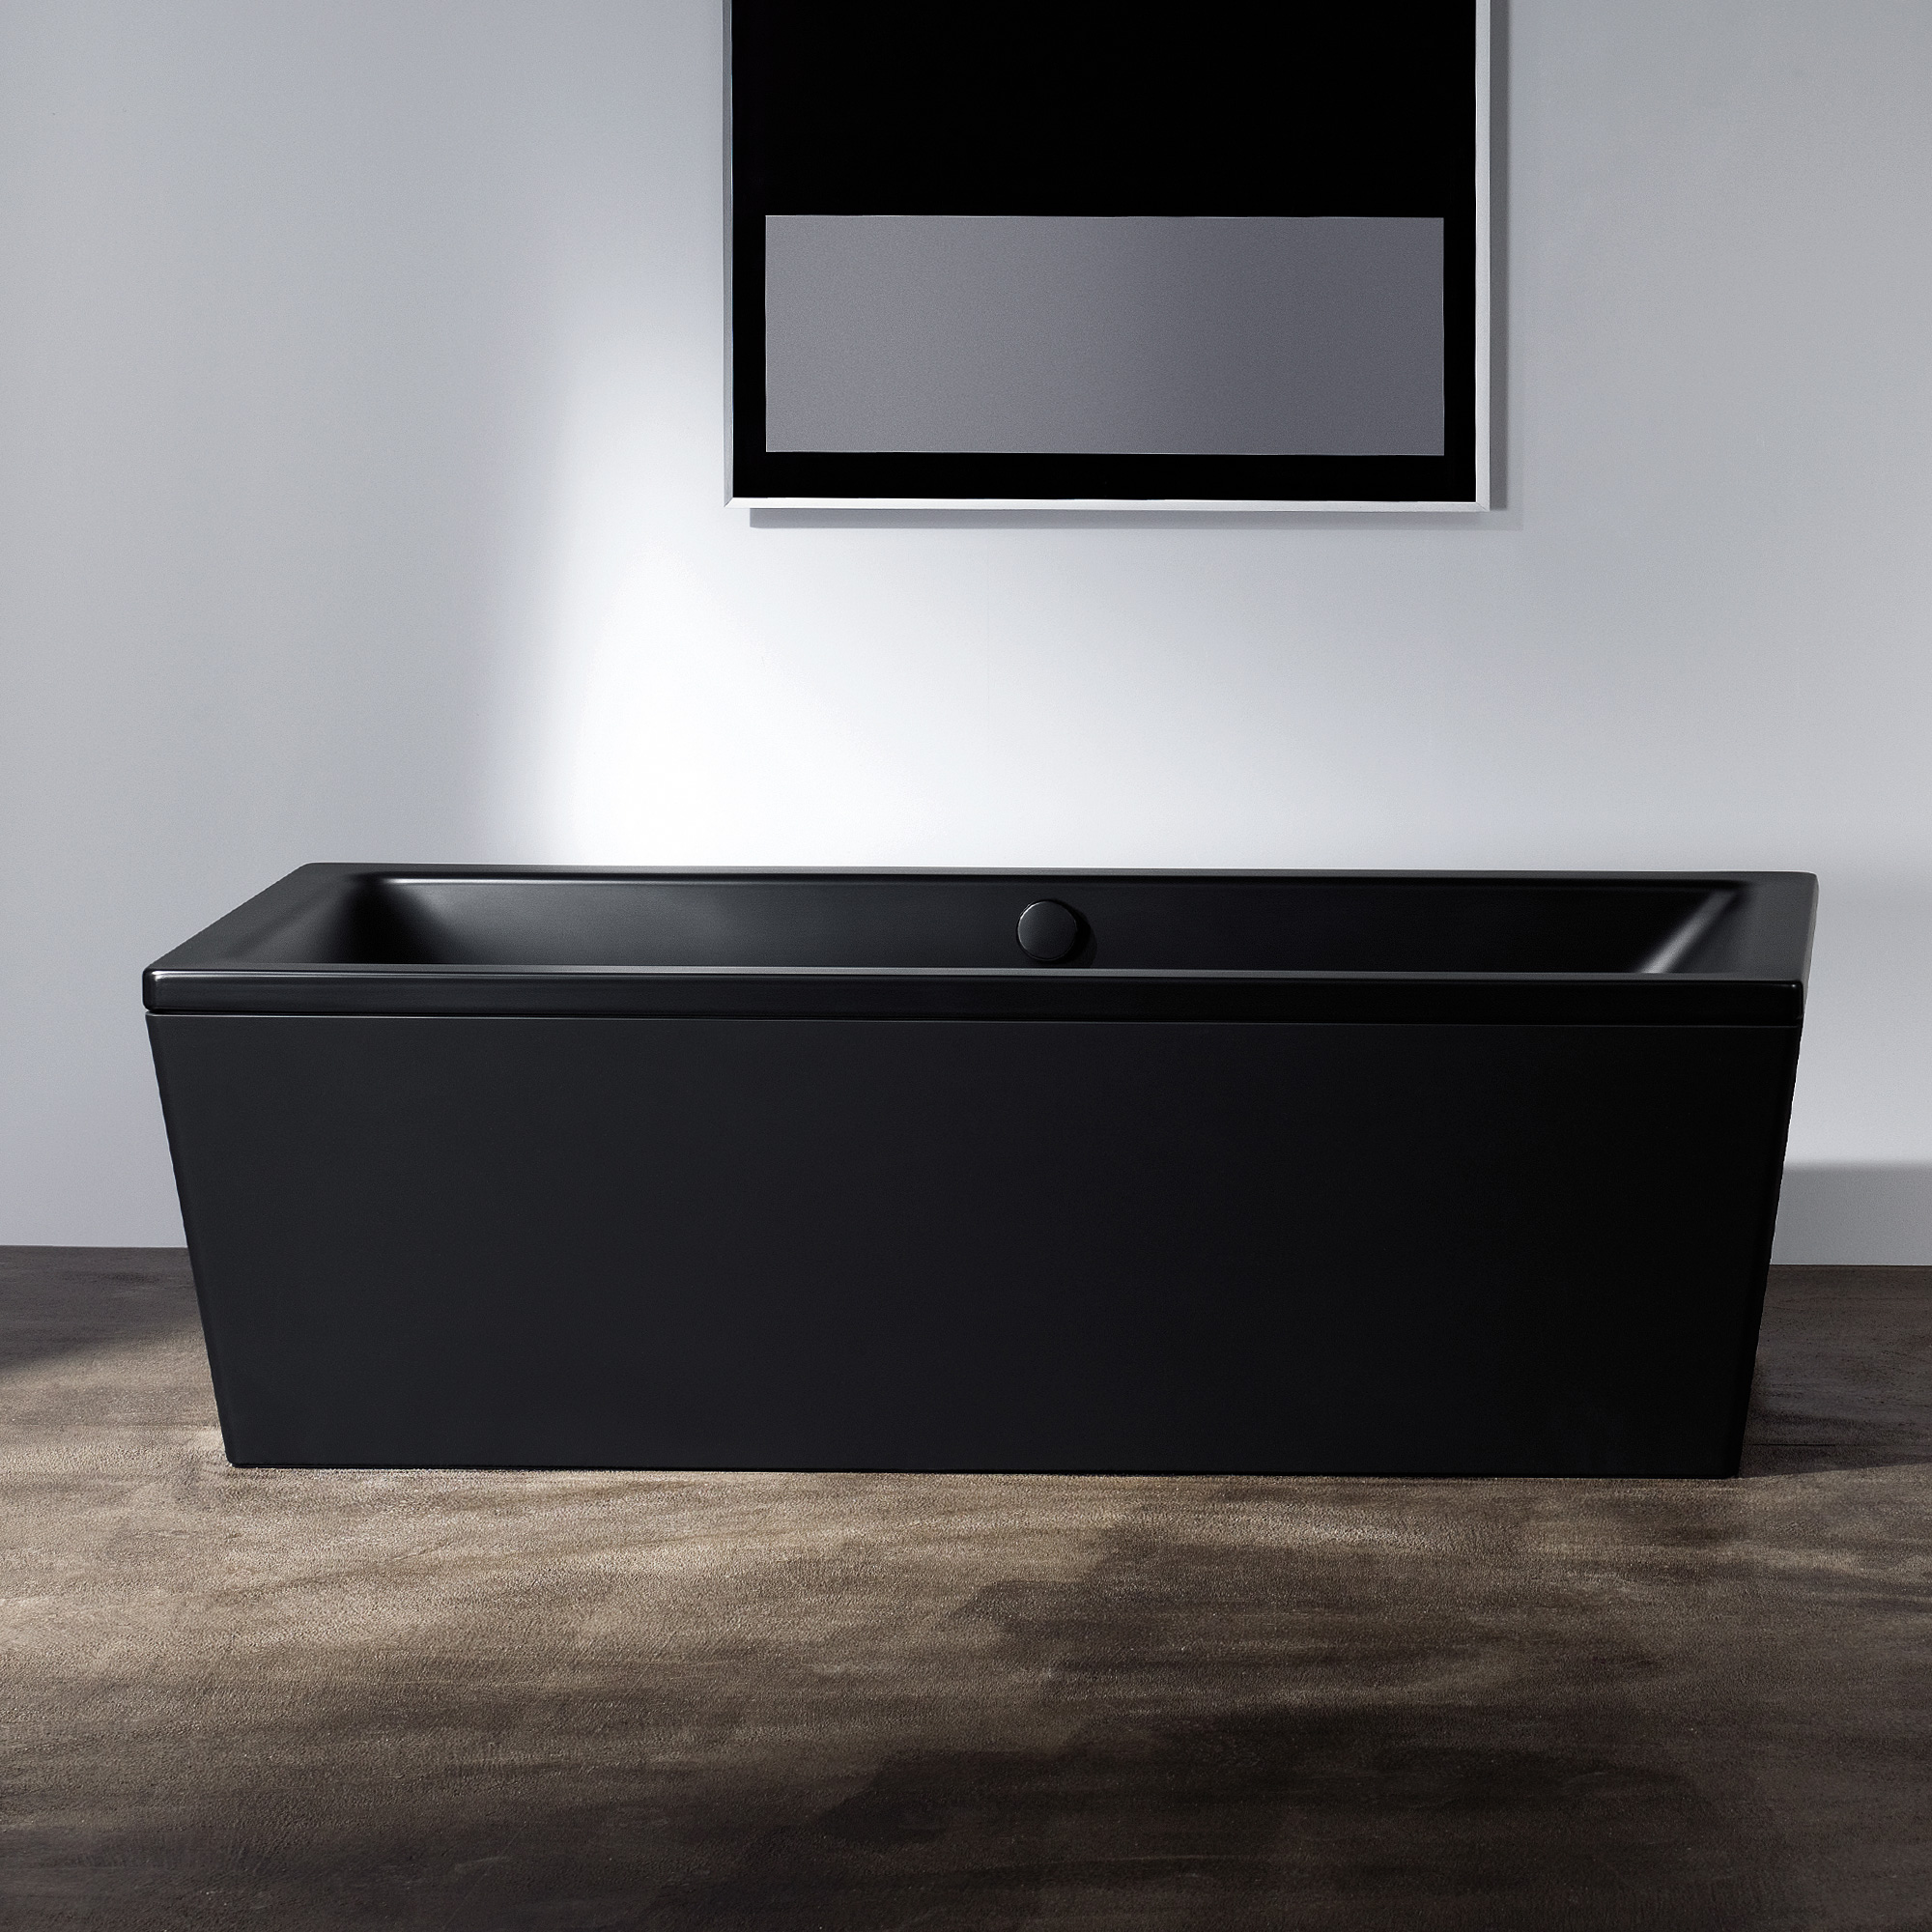 kaldewei conoduo freistehende badewanne mit verkleidung. Black Bedroom Furniture Sets. Home Design Ideas